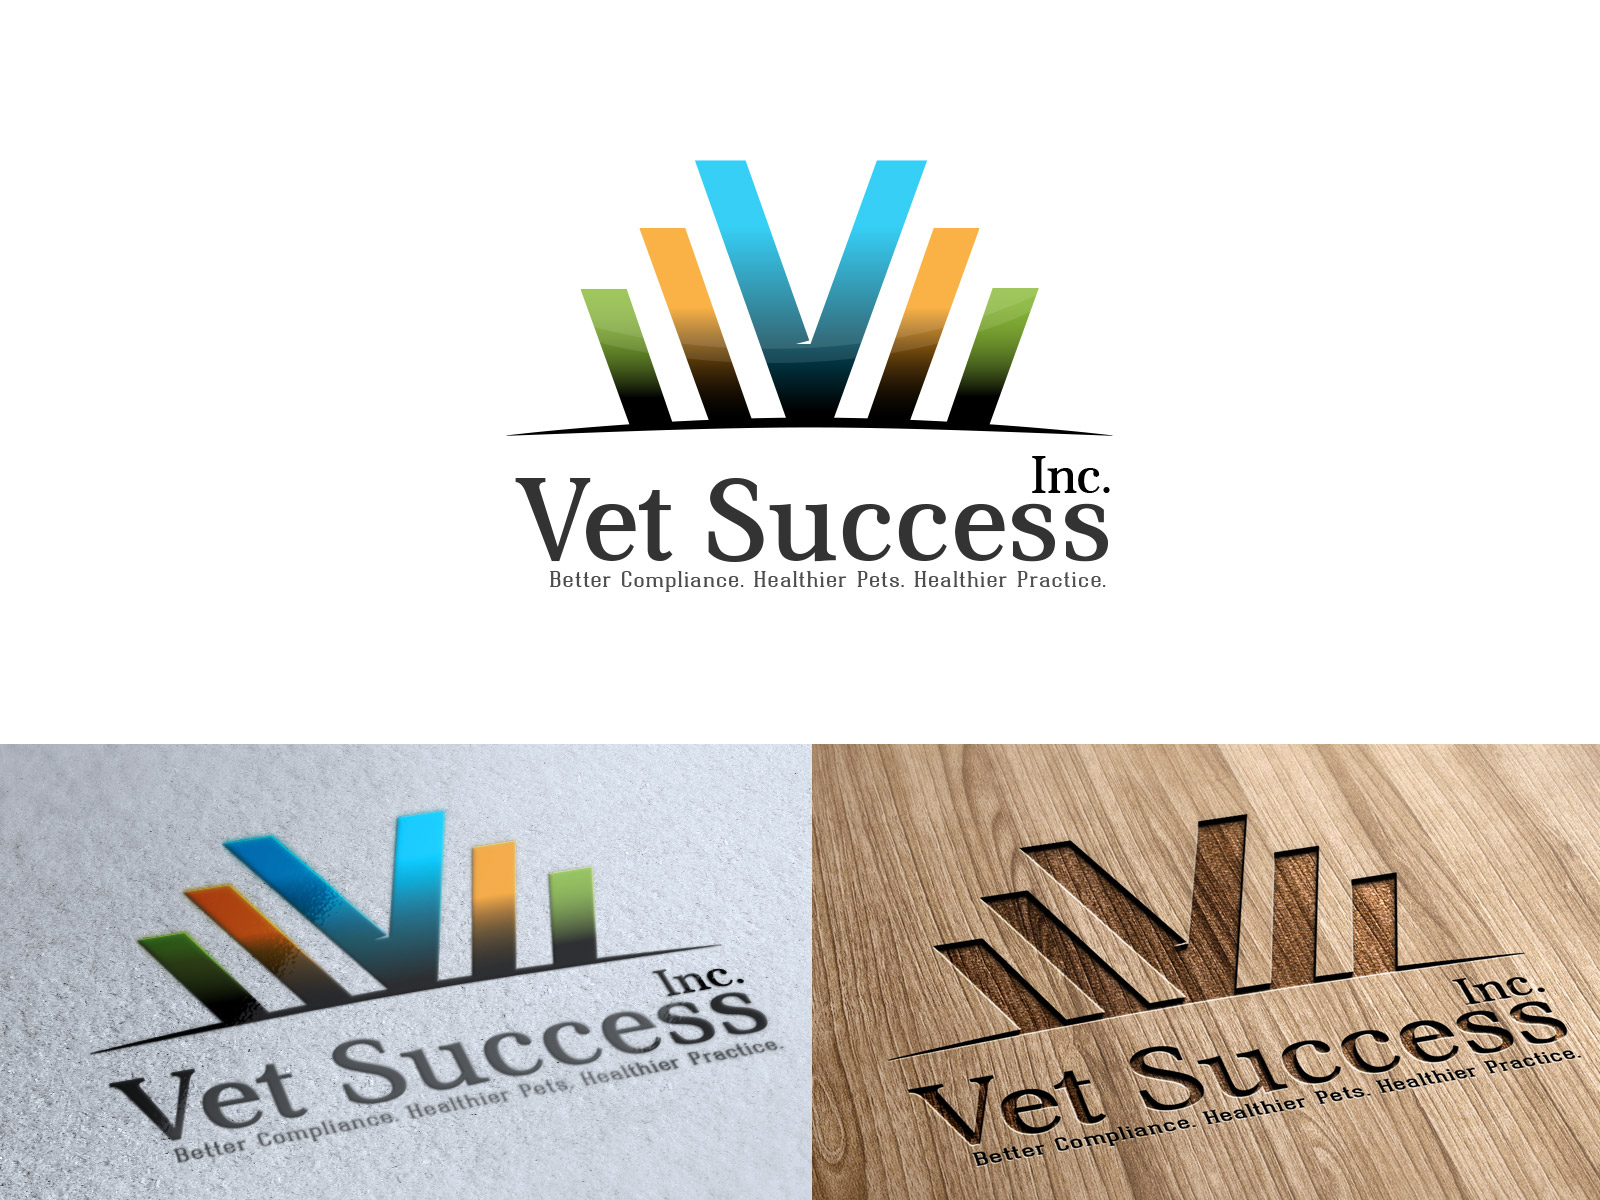 Logo Design by olii - Entry No. 109 in the Logo Design Contest Imaginative Logo Design for Vet Success Inc..